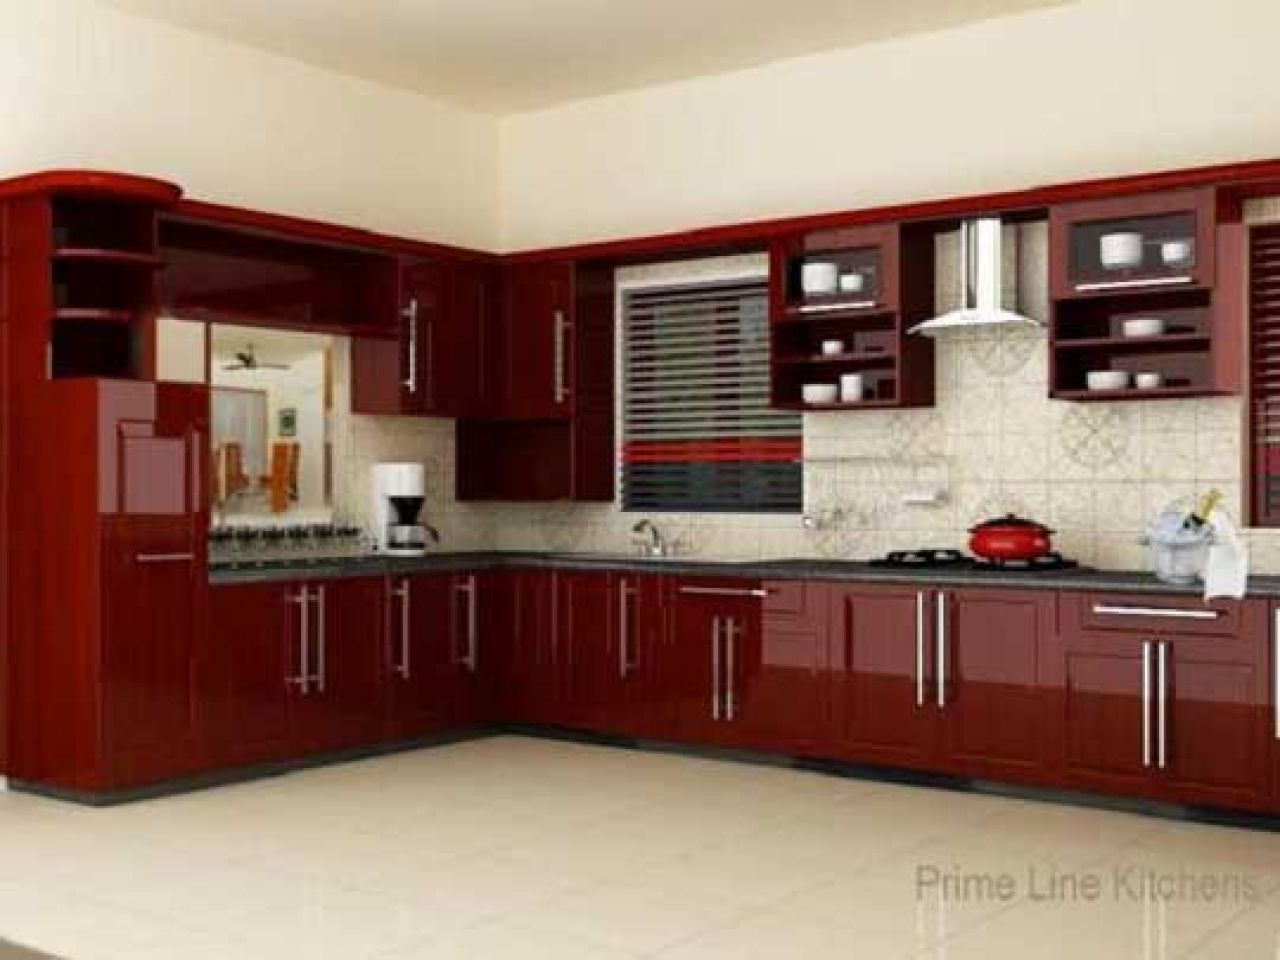 2020 Kitchen Design V9 Free Download New Model Kitchen Design Kerala Conexaowebmix